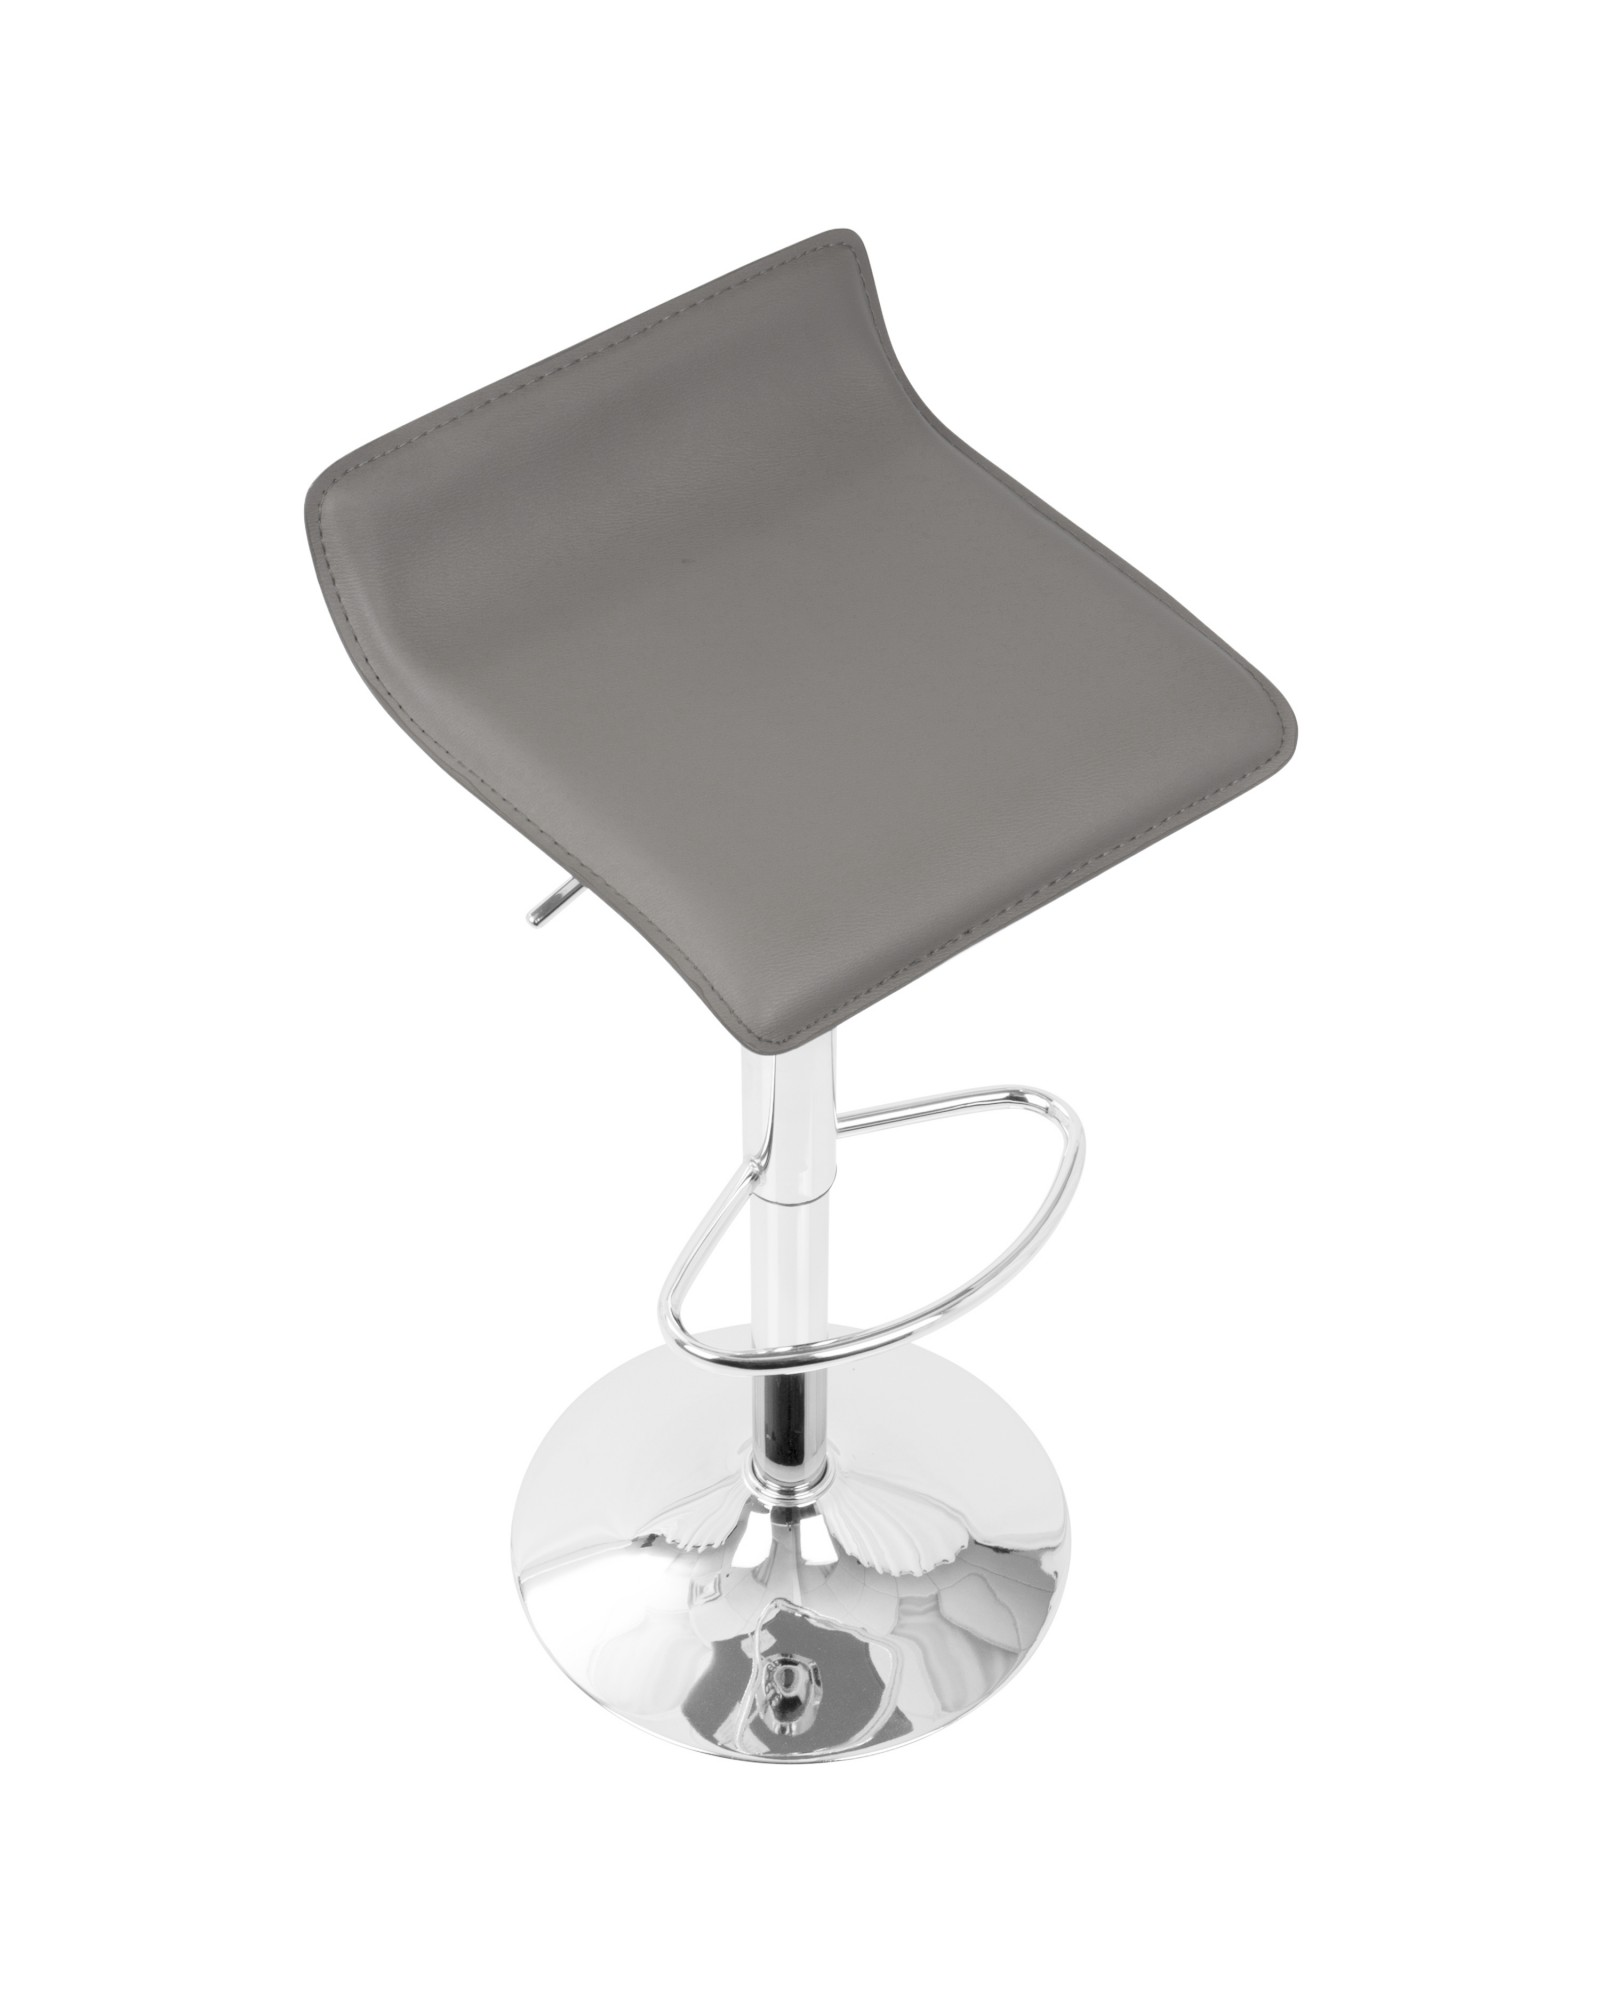 Amazing Ale Barstool Ale Contemporary Adjustable Barstool In Grey Alphanode Cool Chair Designs And Ideas Alphanodeonline